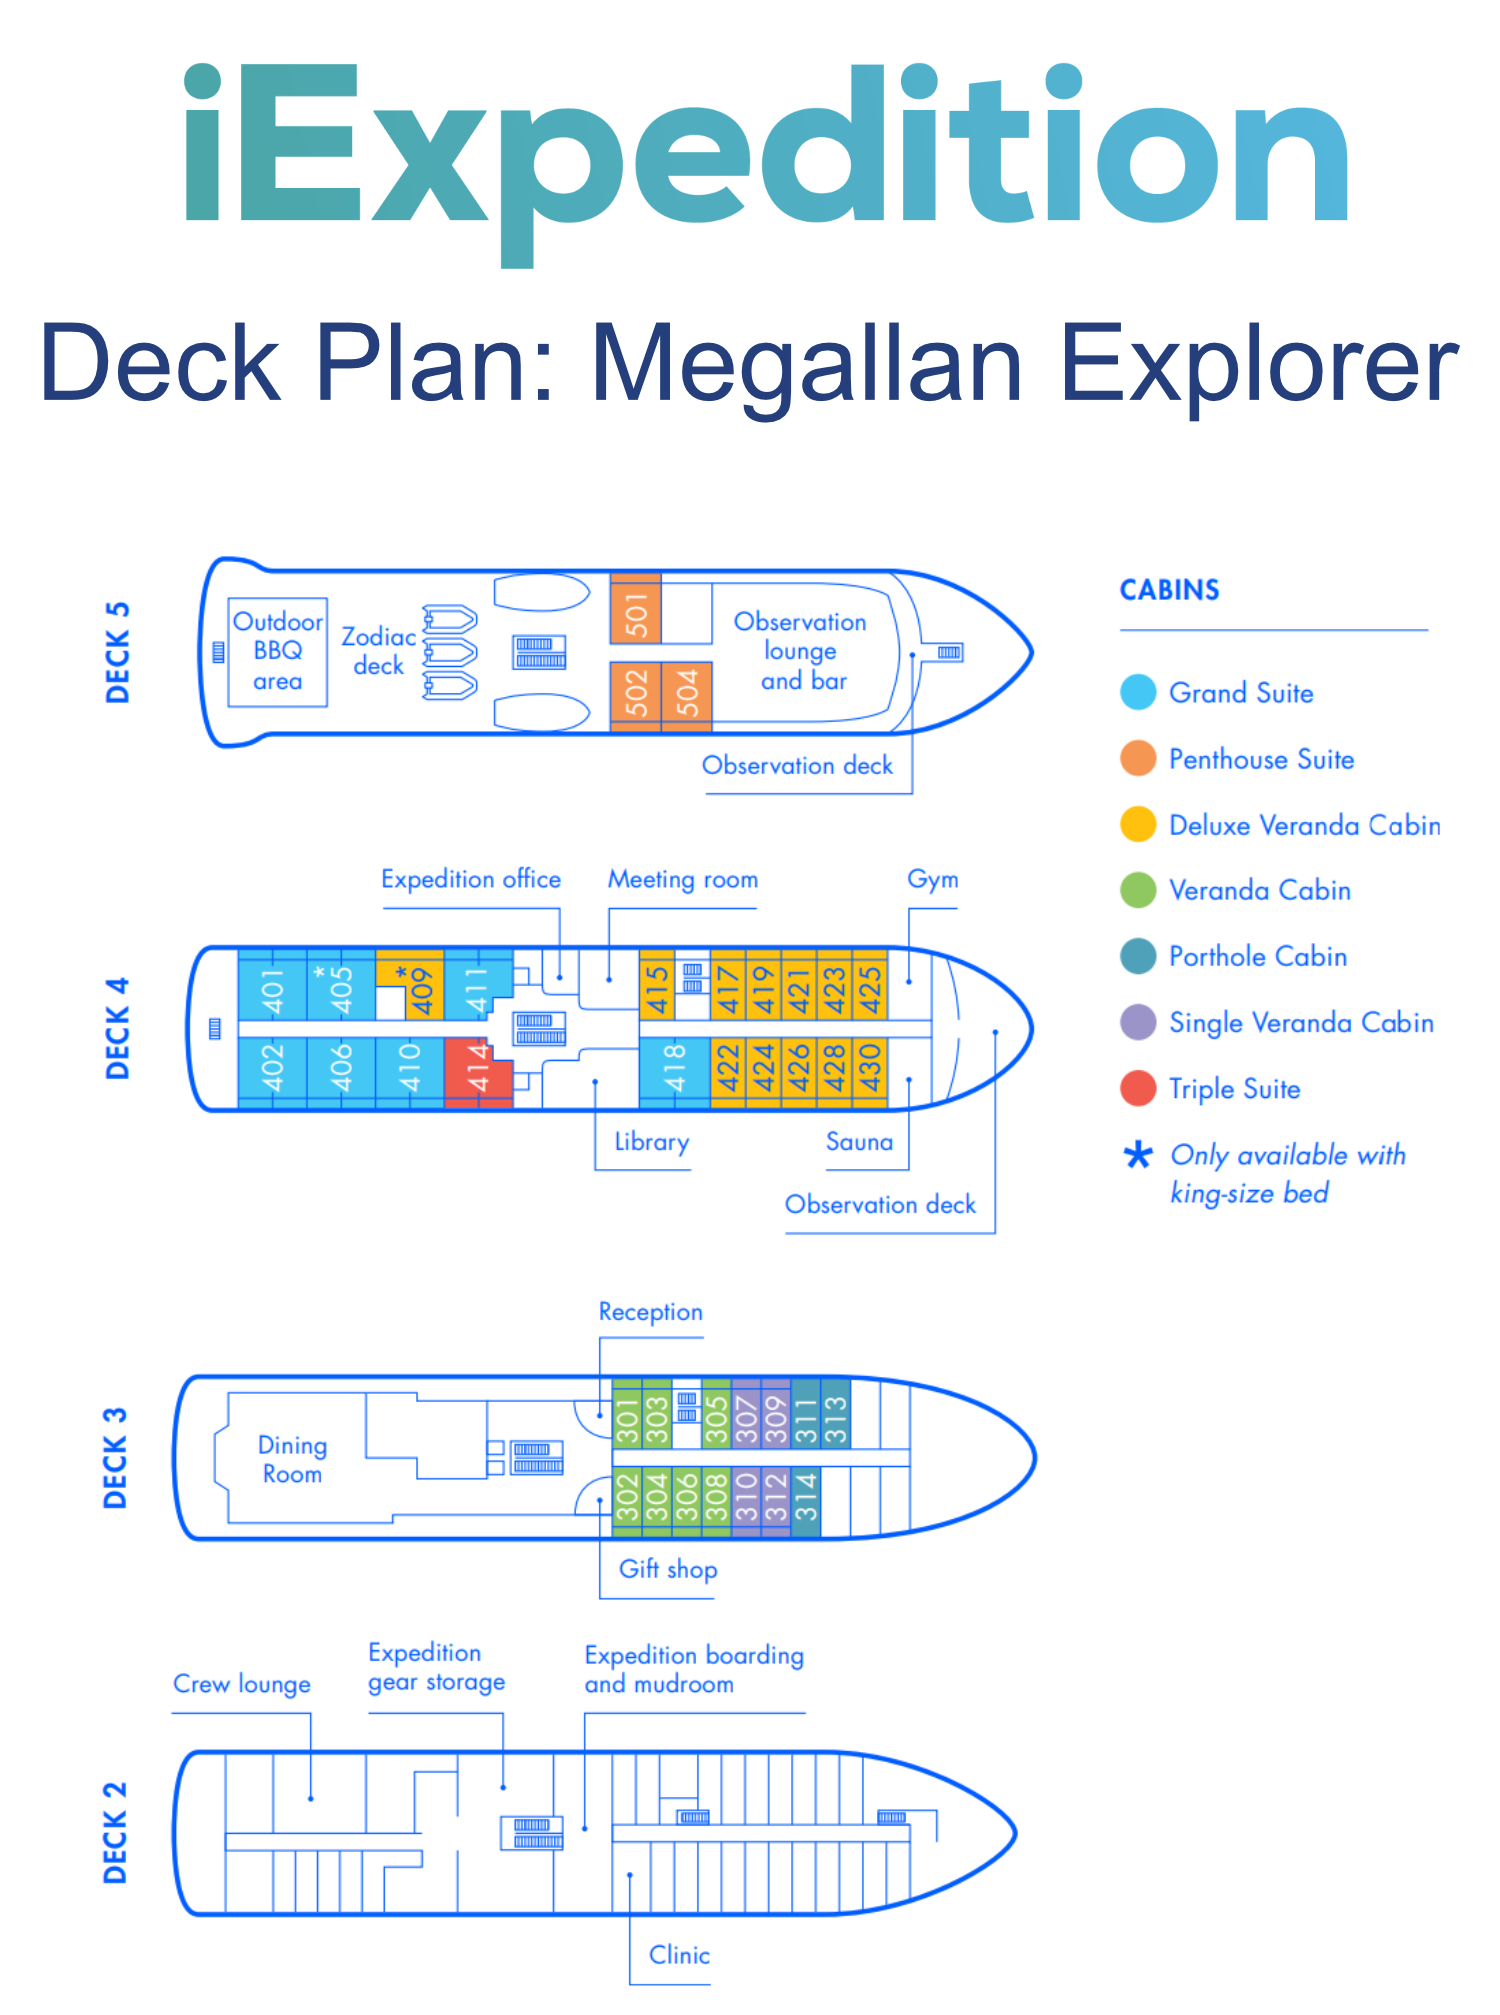 Megallan explorer deck plan